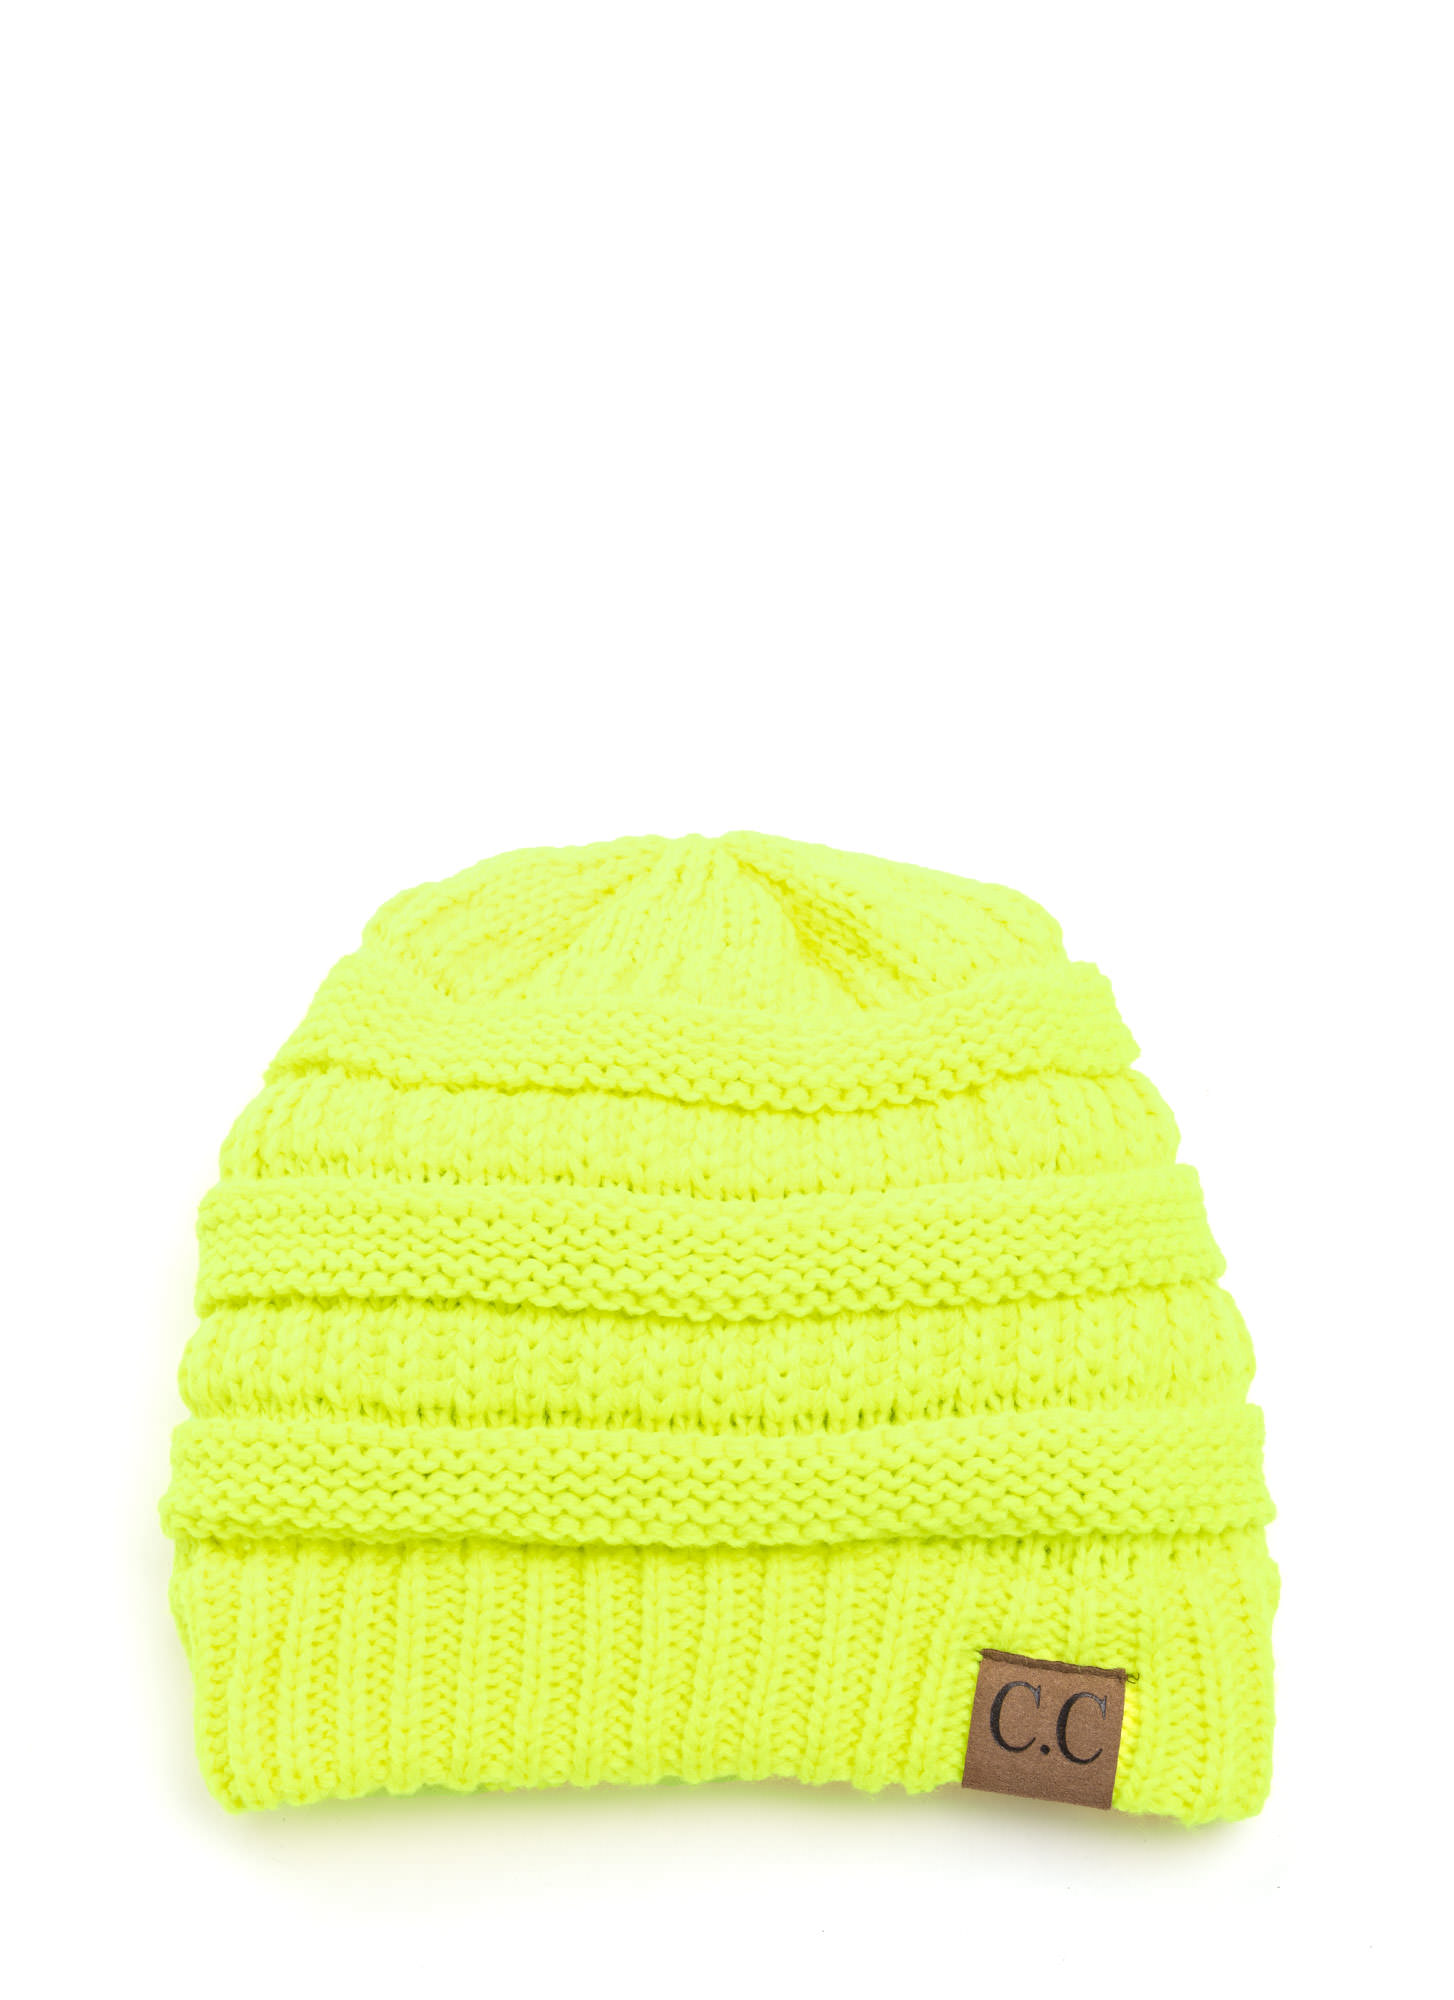 Cozy CC Cable Knit Beanie NEONYELLOW (Final Sale)